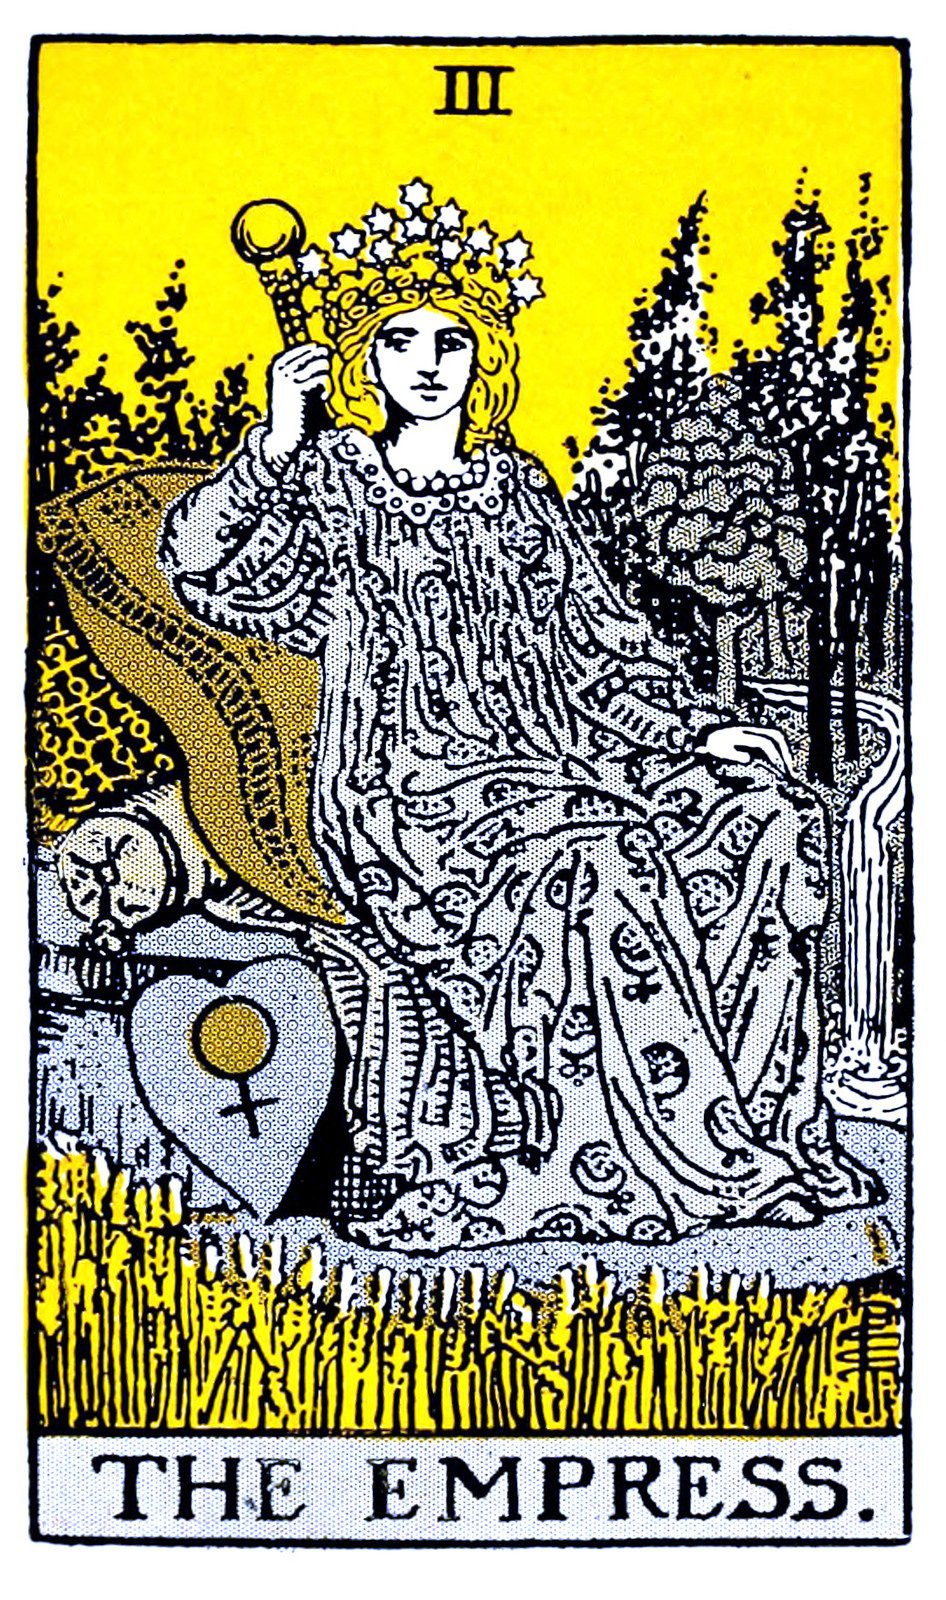 The Empress card in the Tarot printed in white and grey on a yellow background with black outlining. Seated on a cushioned throne, she wears a crown of stars and holds a scepter in her right hand. At her feet is a heart-shaped shield with the Venus or woman symbol on it.